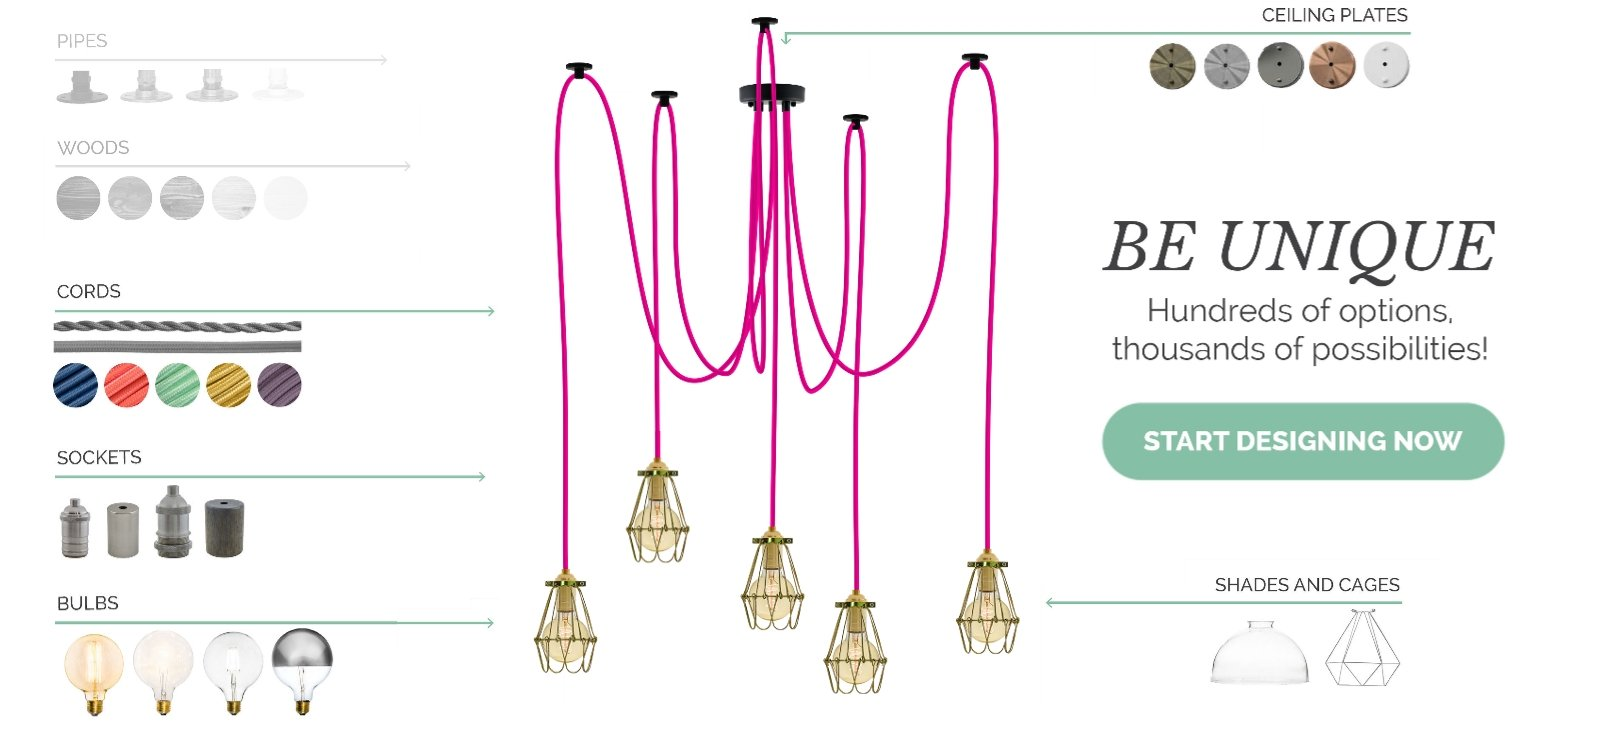 Design Your Own Light Fixture